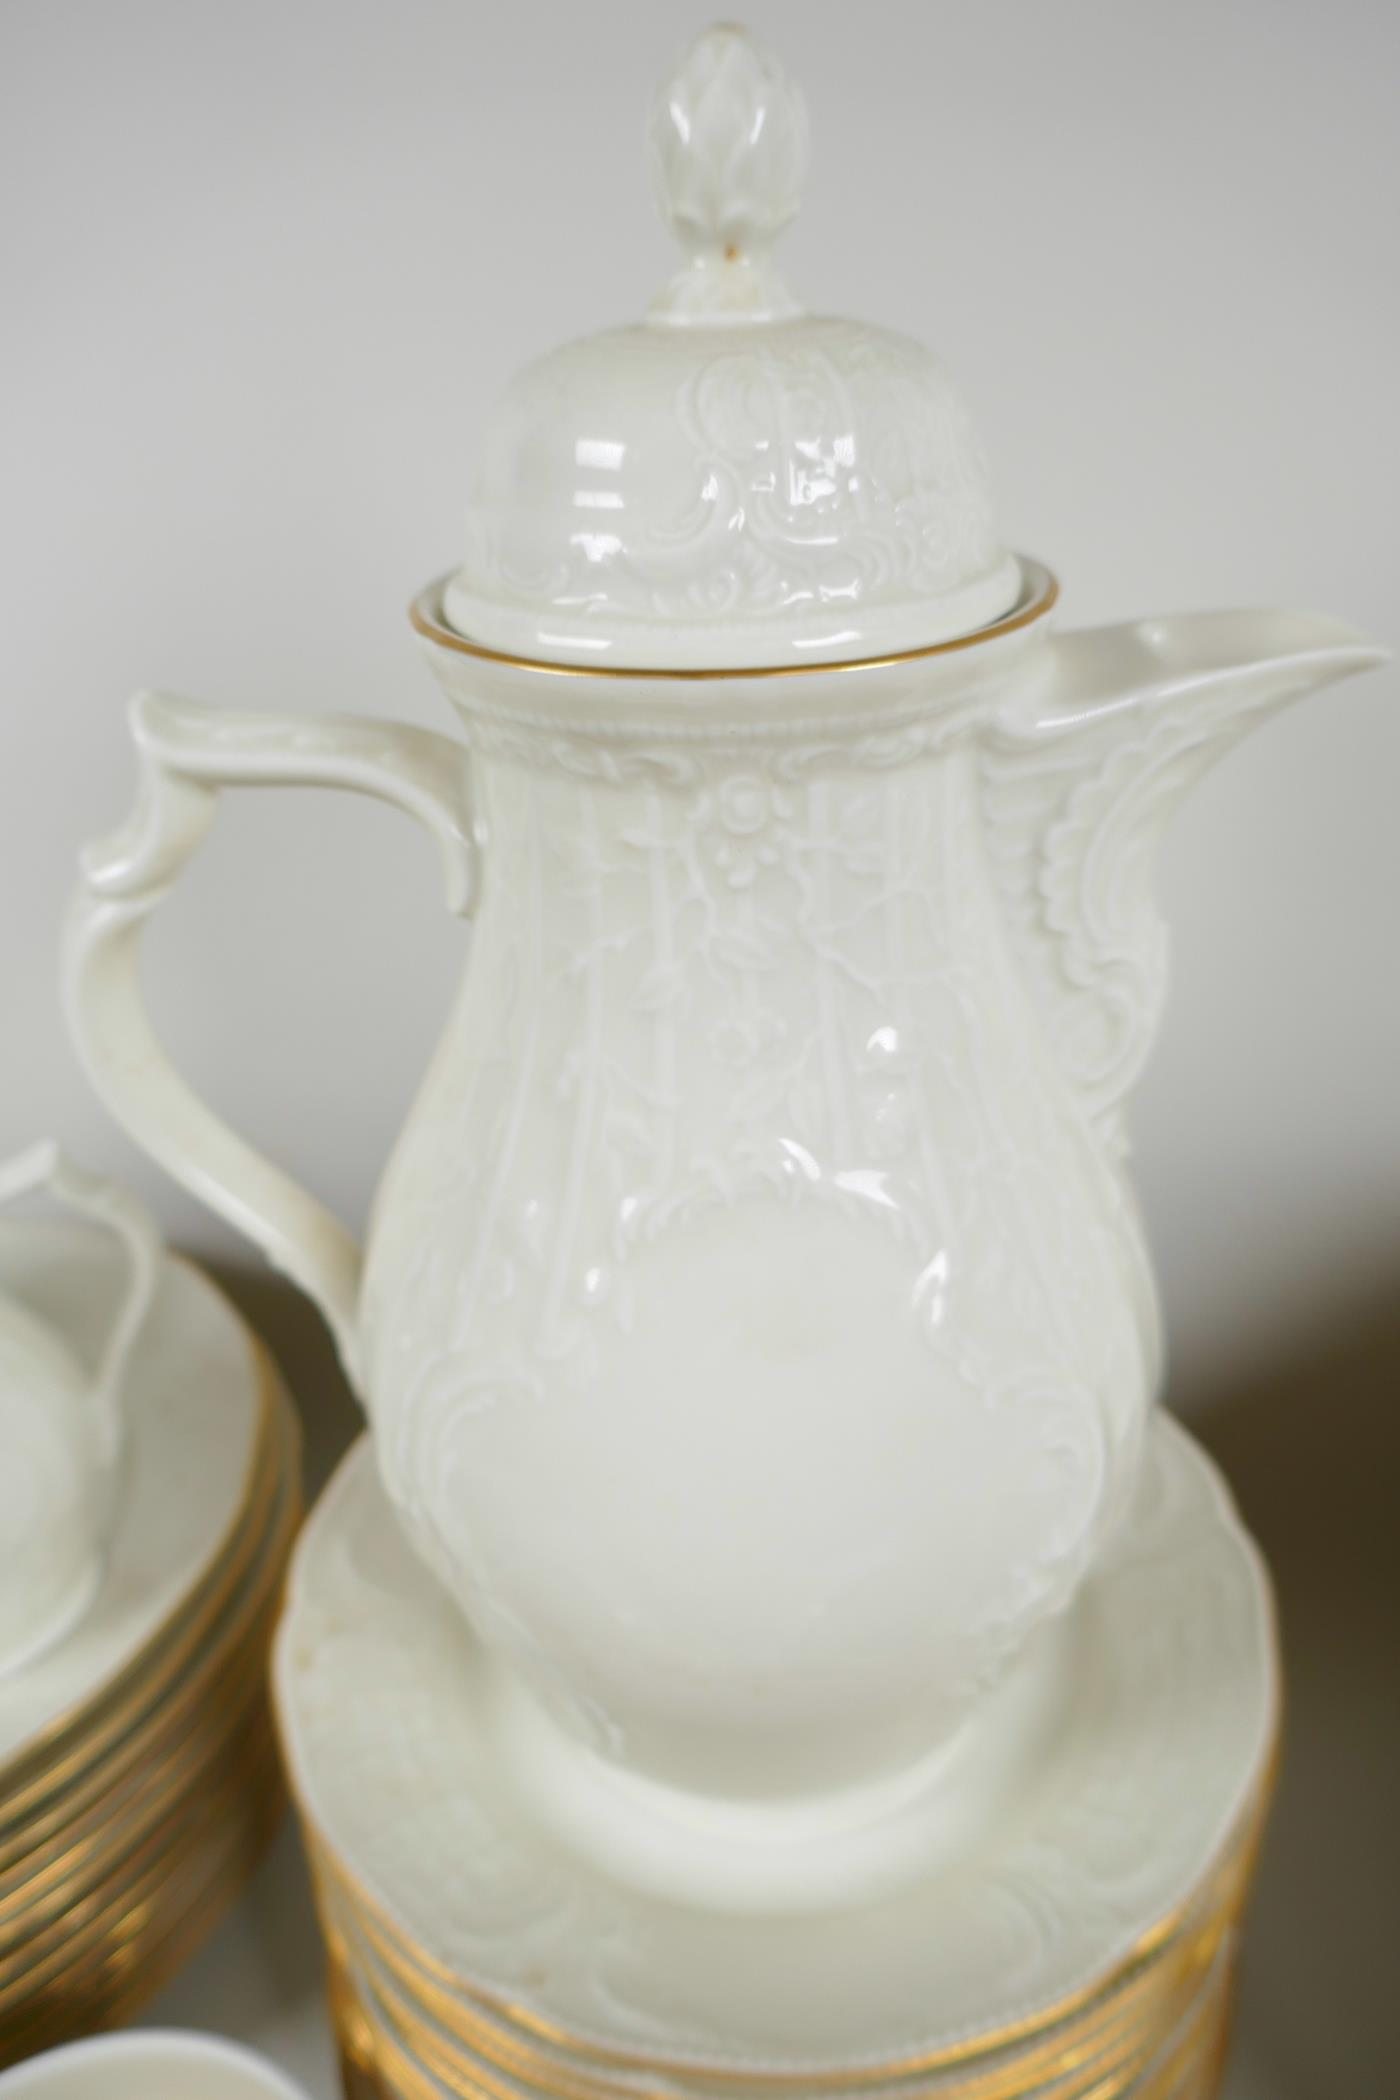 A Rosenthal 'Classic' part dinner and tea service with cream glaze and embossed decoration - Image 3 of 5